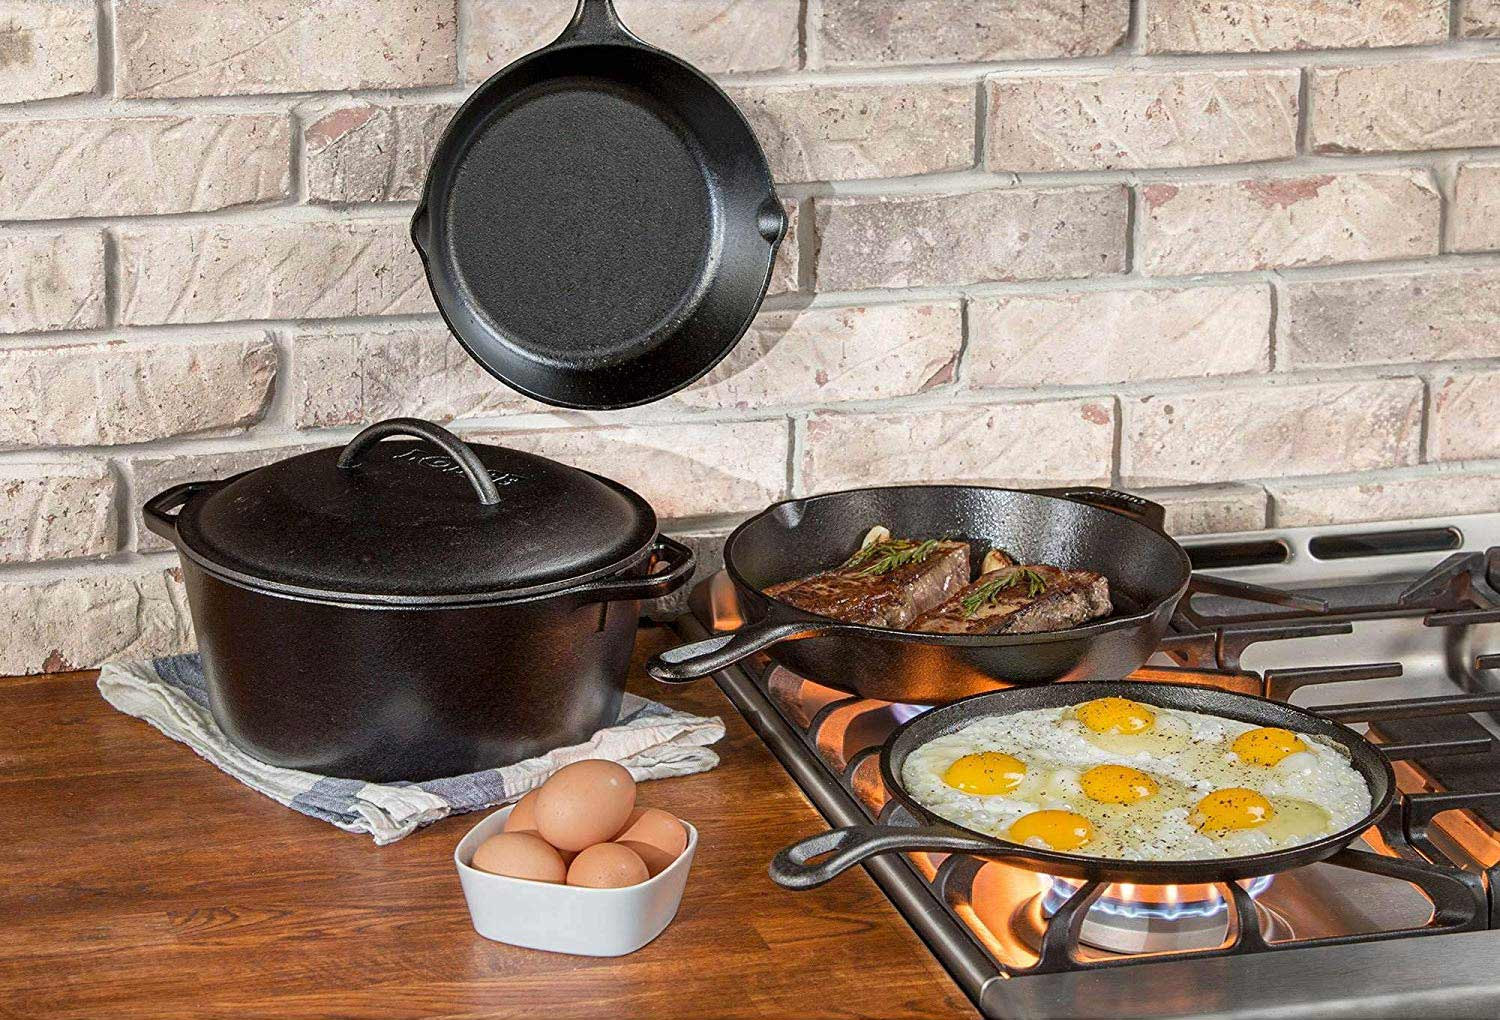 Cast iron cooking kitchen